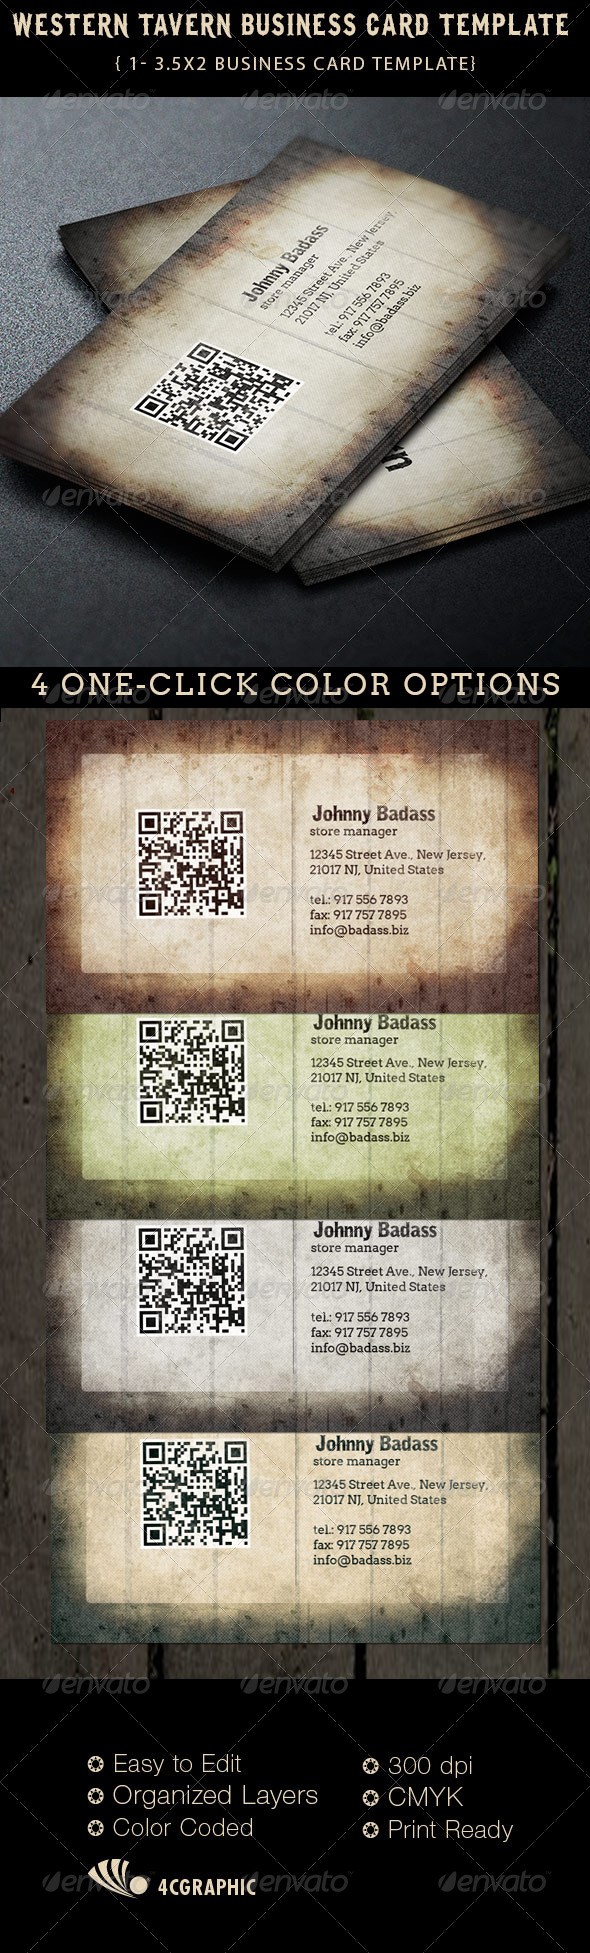 GraphicRiver Western Tavern Business Card Template 6334201